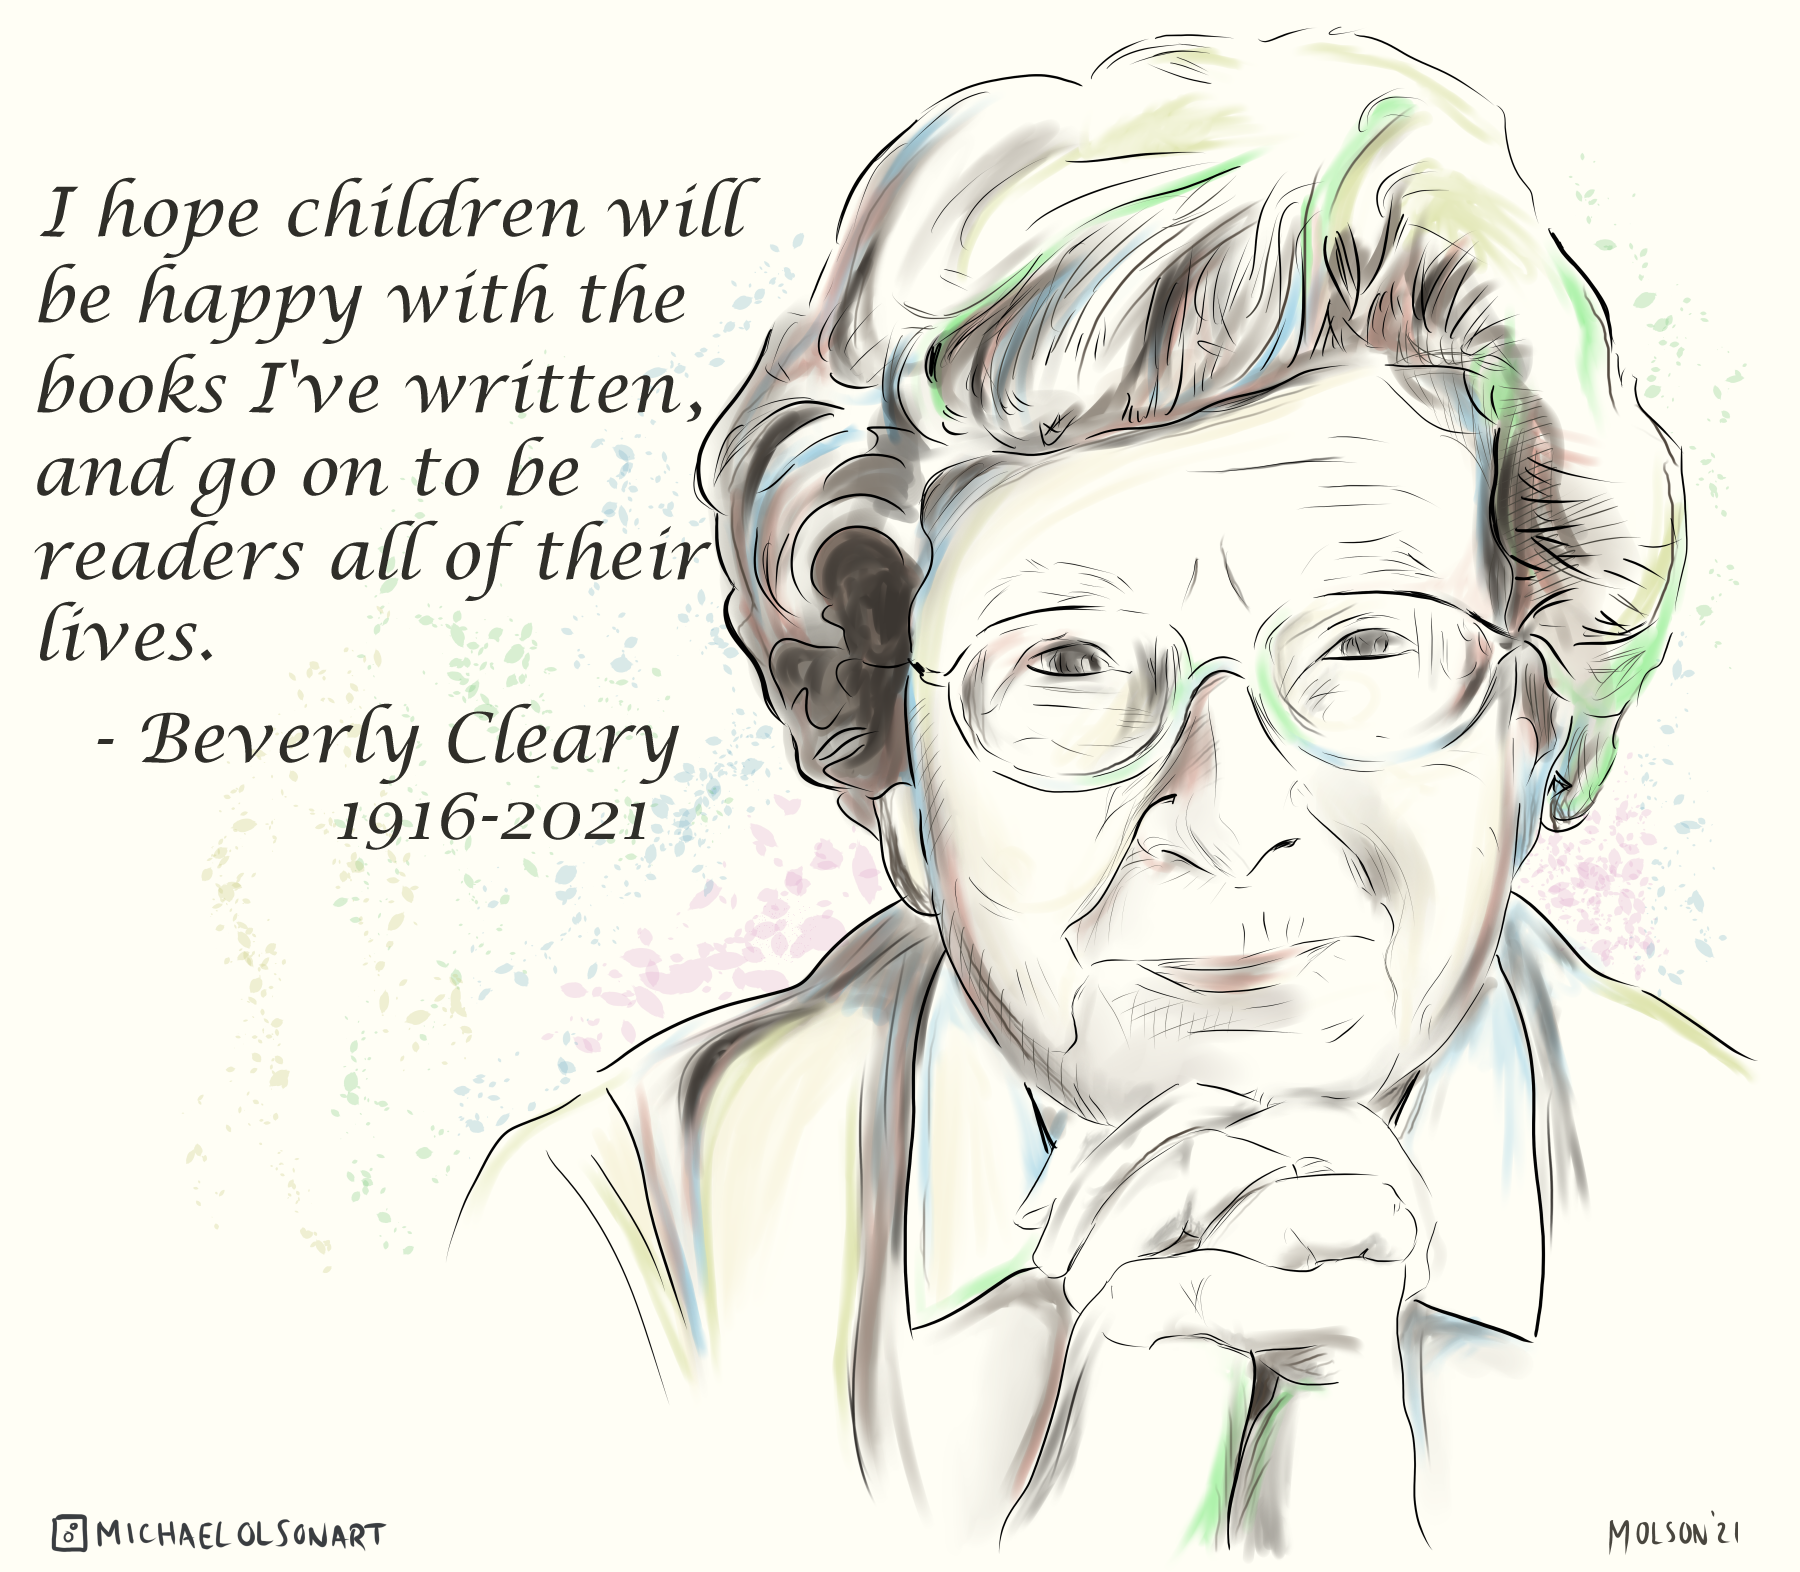 """I hope children will be happy with the books I've written, and go on to be readers all of their lives"" – Rest in peace, Beverly Cleary. [1800*1572]"